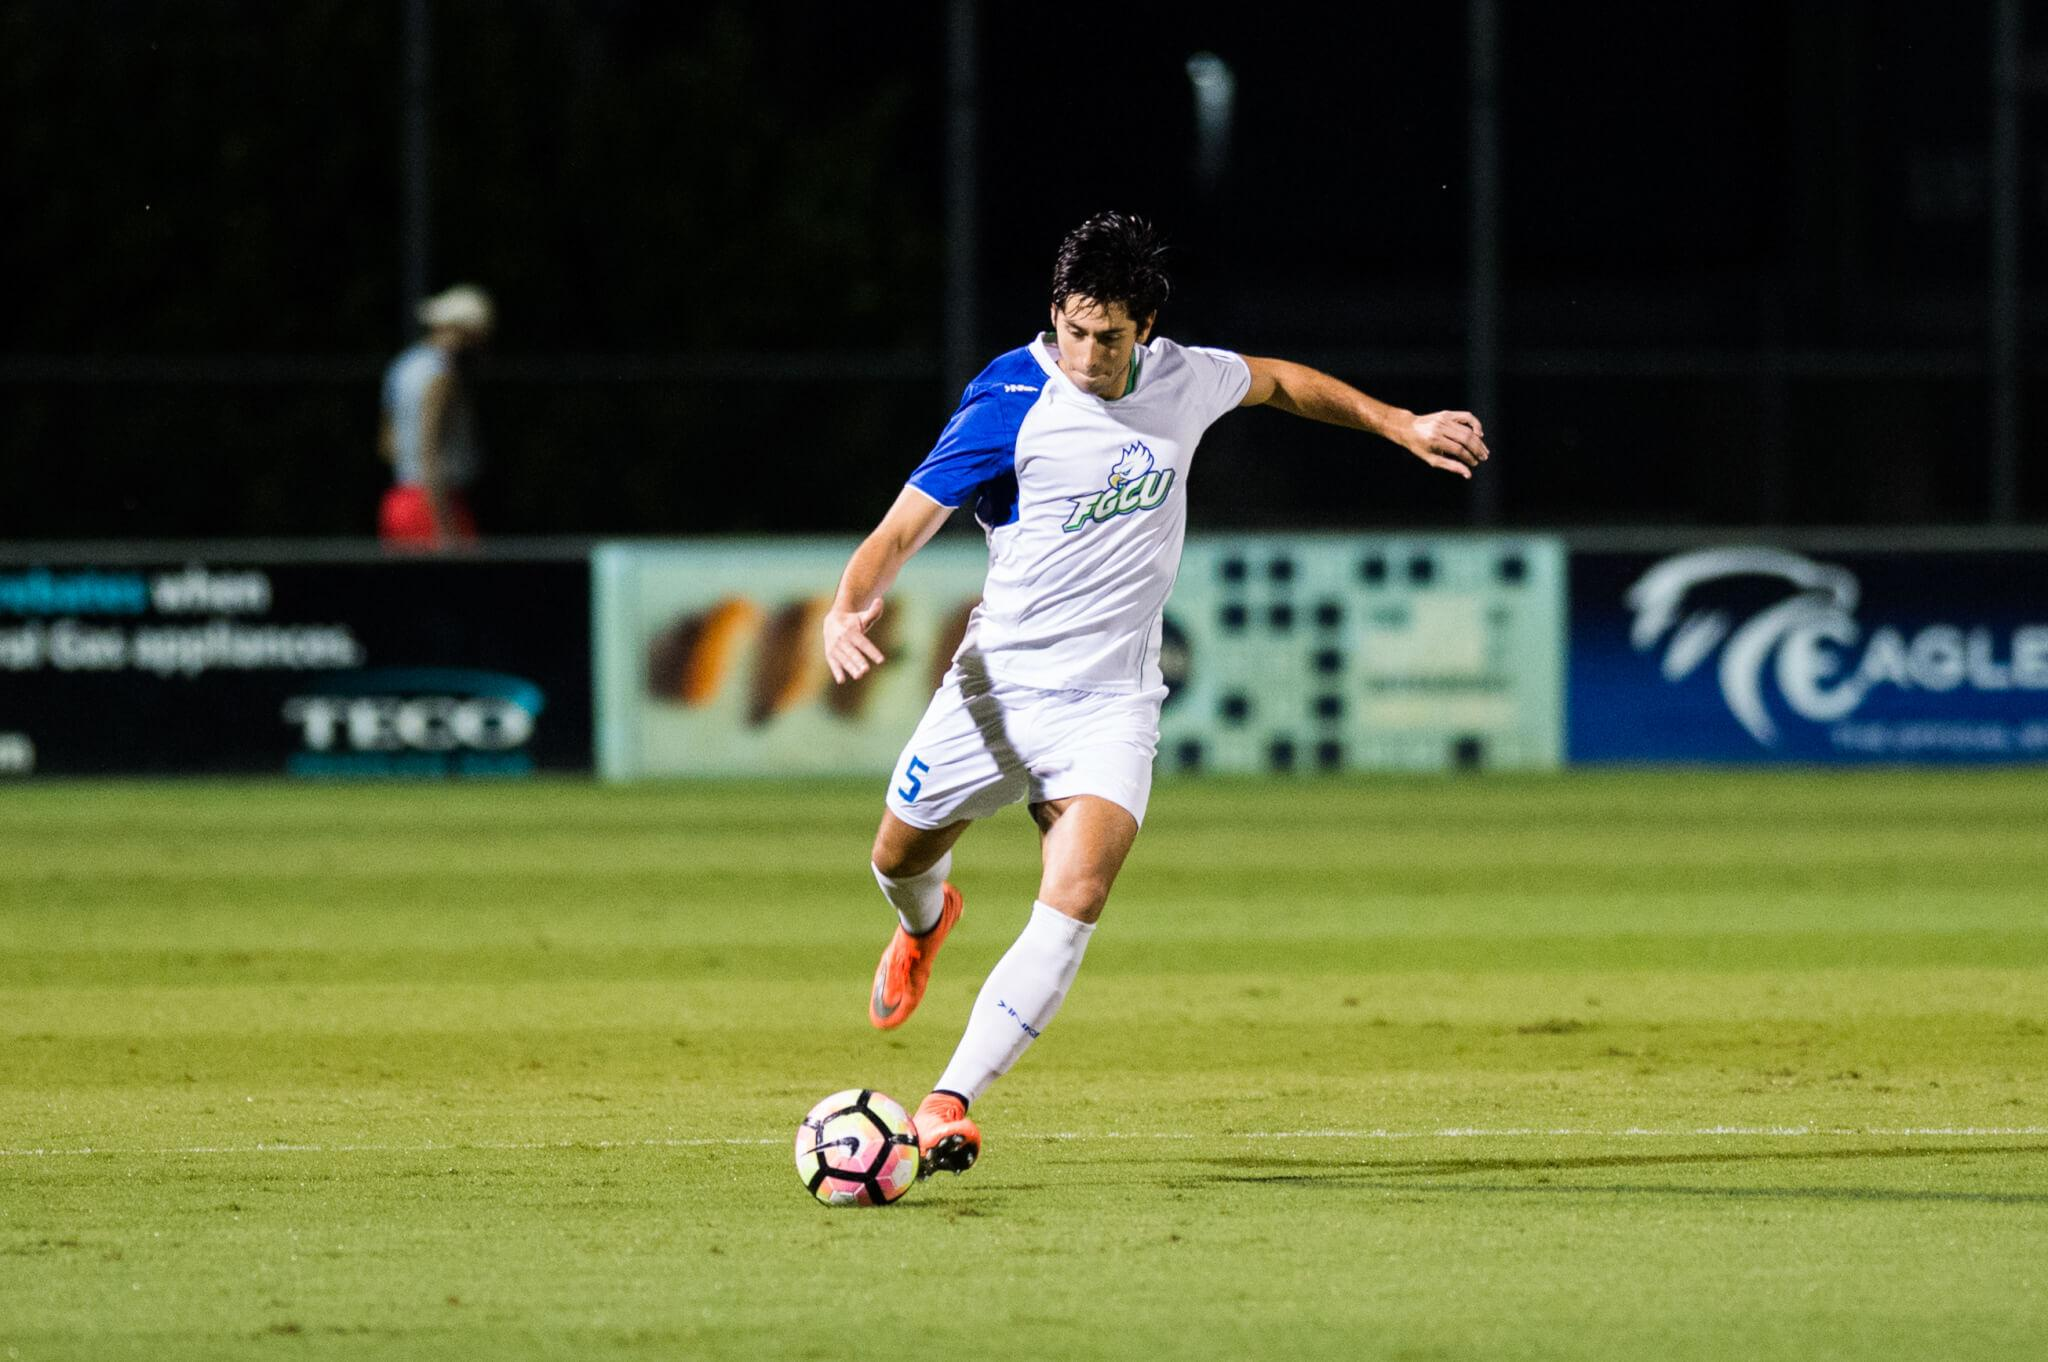 Preview: FGCU men's soccer at NJIT